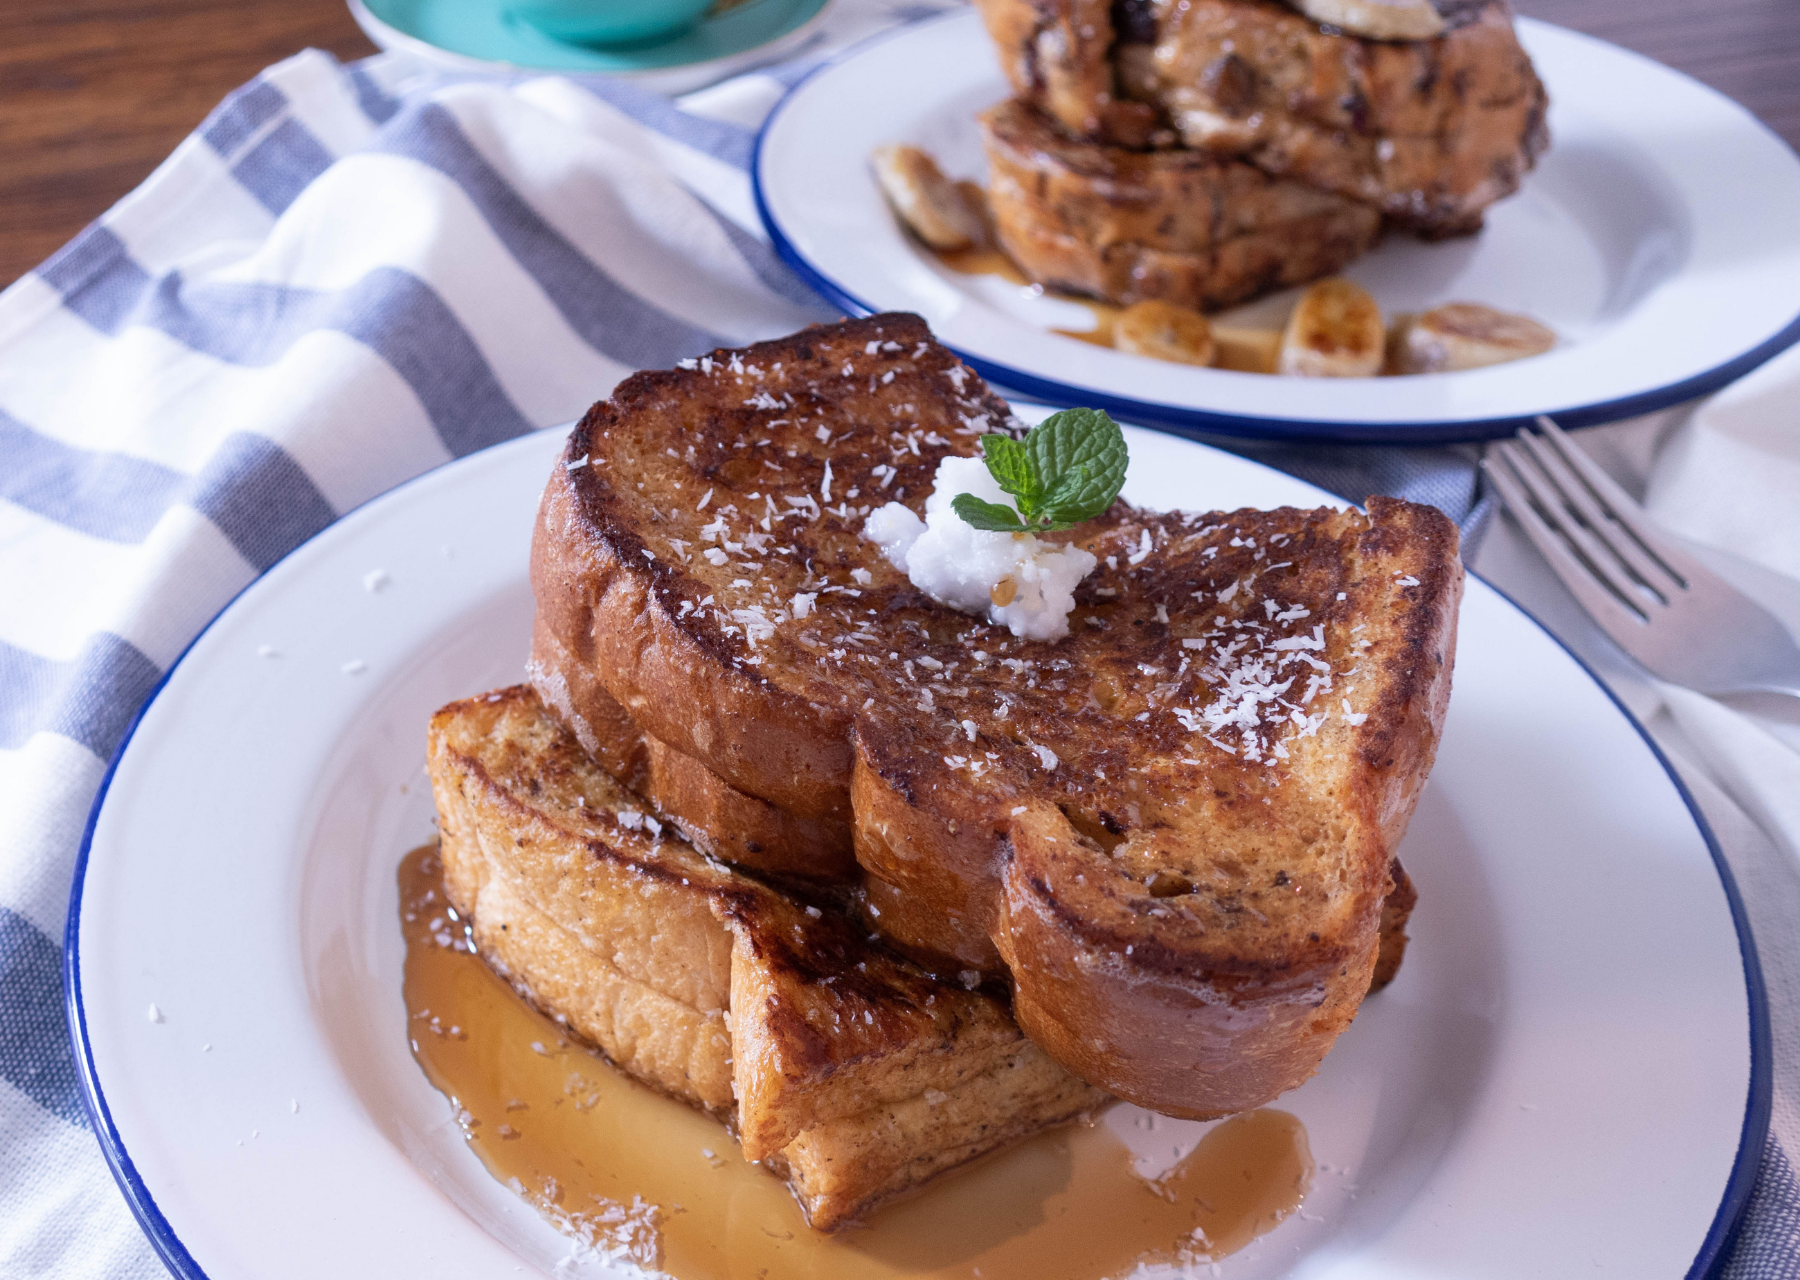 Coconut French Toast and Banana Peanut Butter French Toast